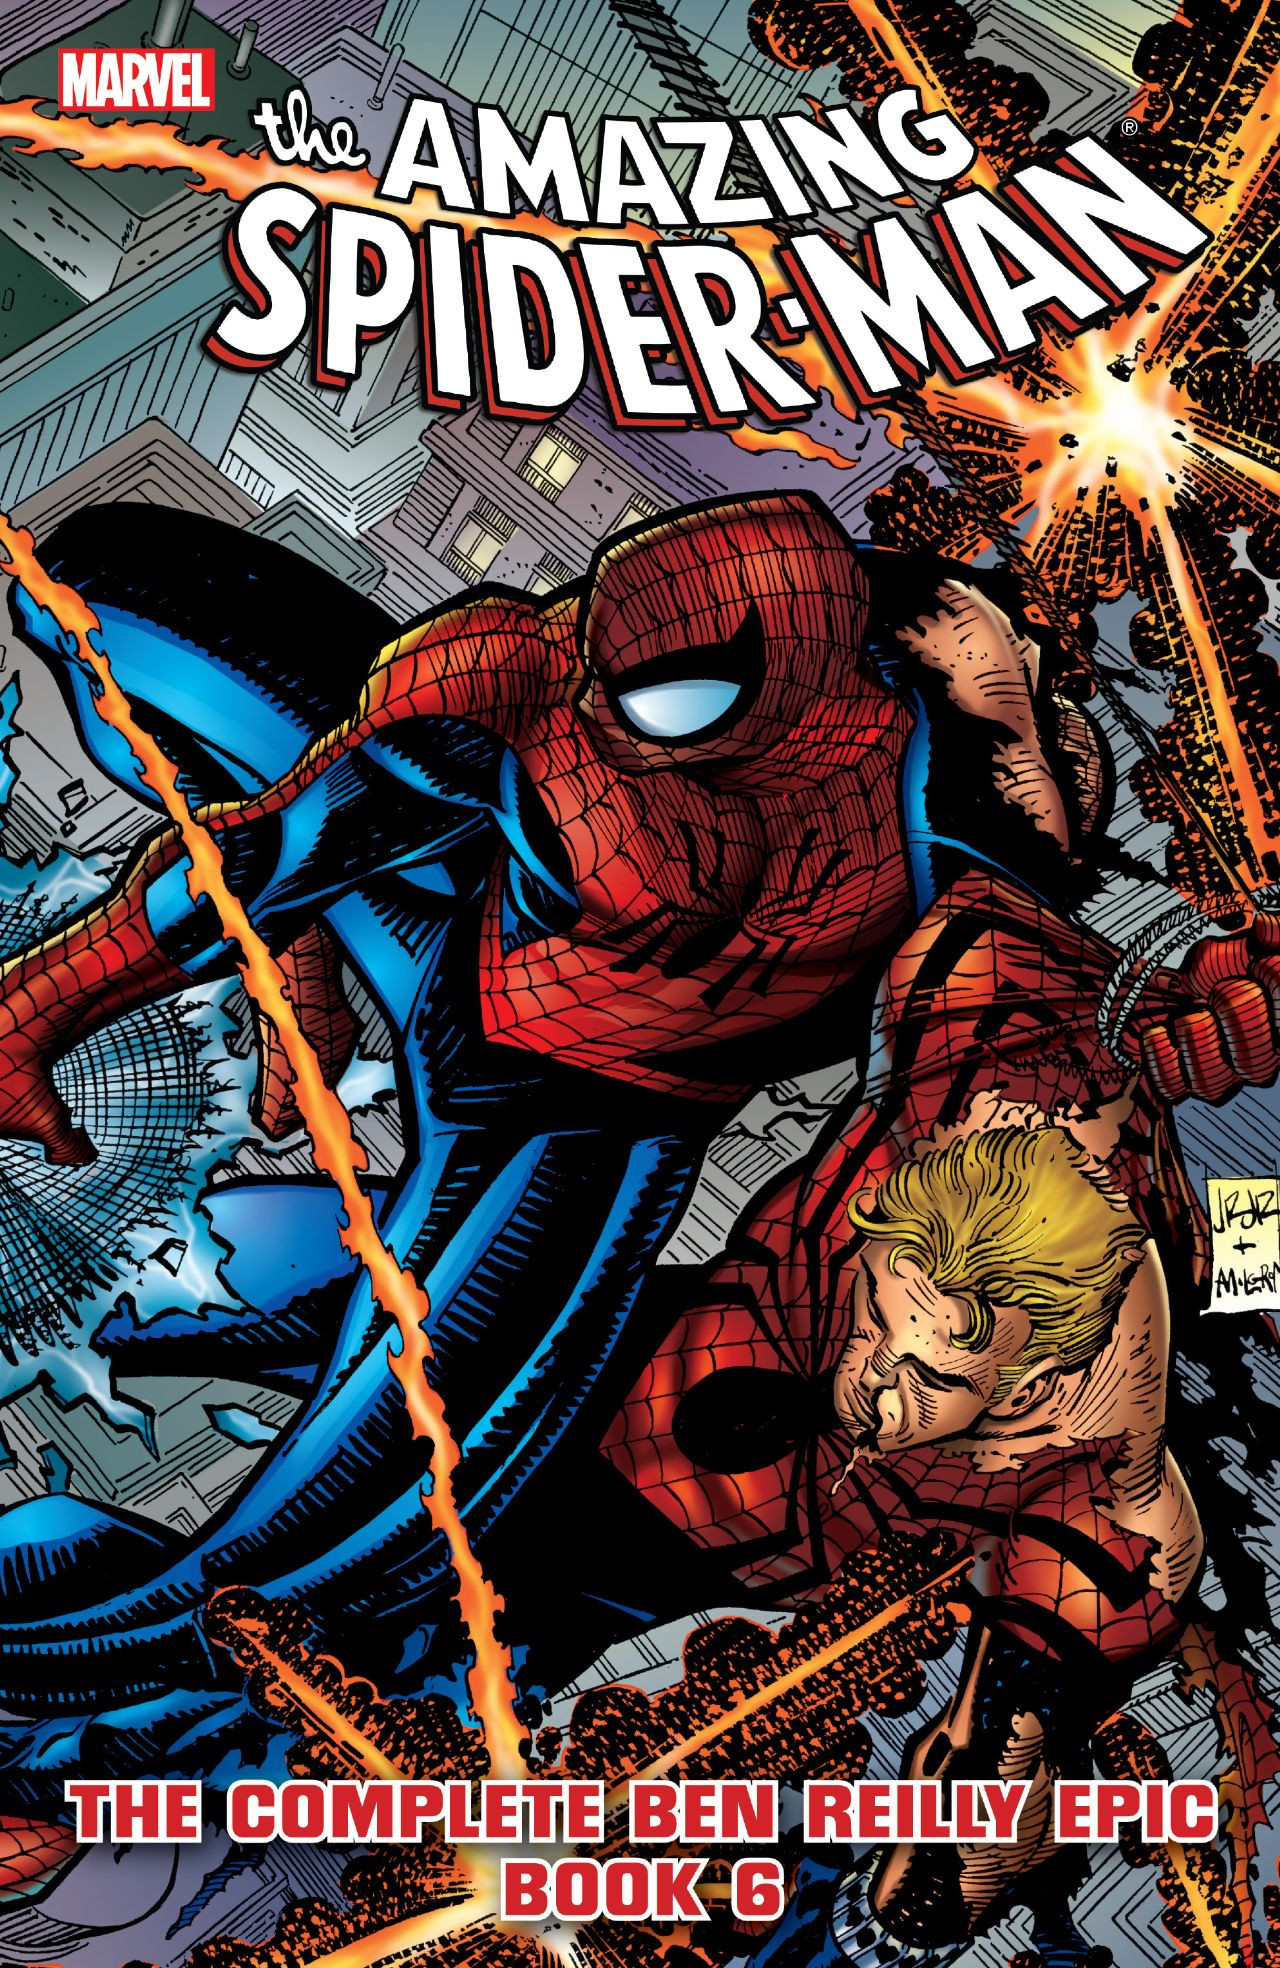 Spider-Man: The Complete Ben Reilly Epic Vol 1 6 | Marvel Database